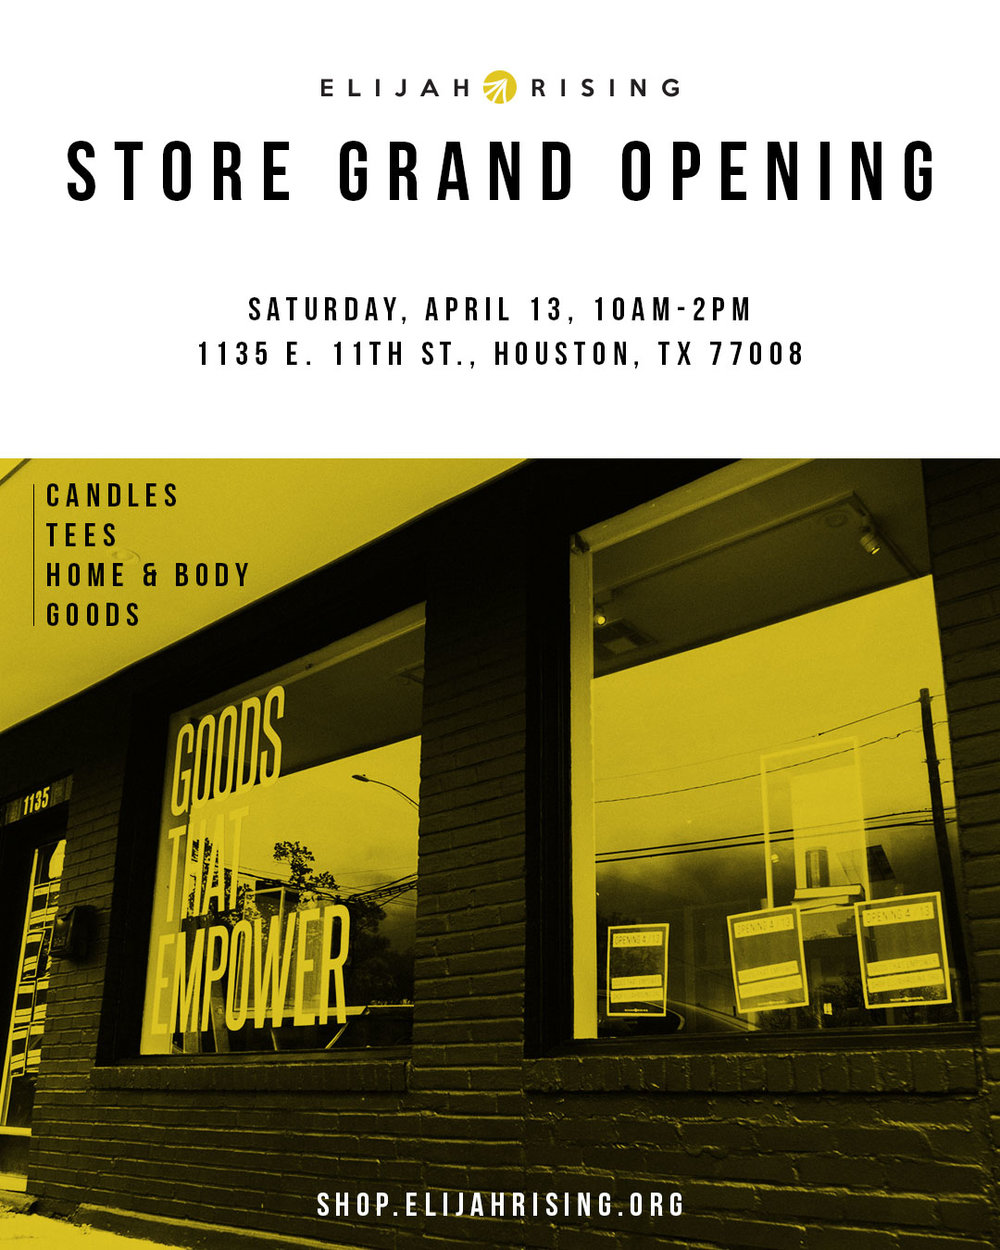 SAVE THE DATE! - We invite you to celebrate the Grand Opening of our new storefront in the Heights! Bring a friend and come shop all of our new goods!